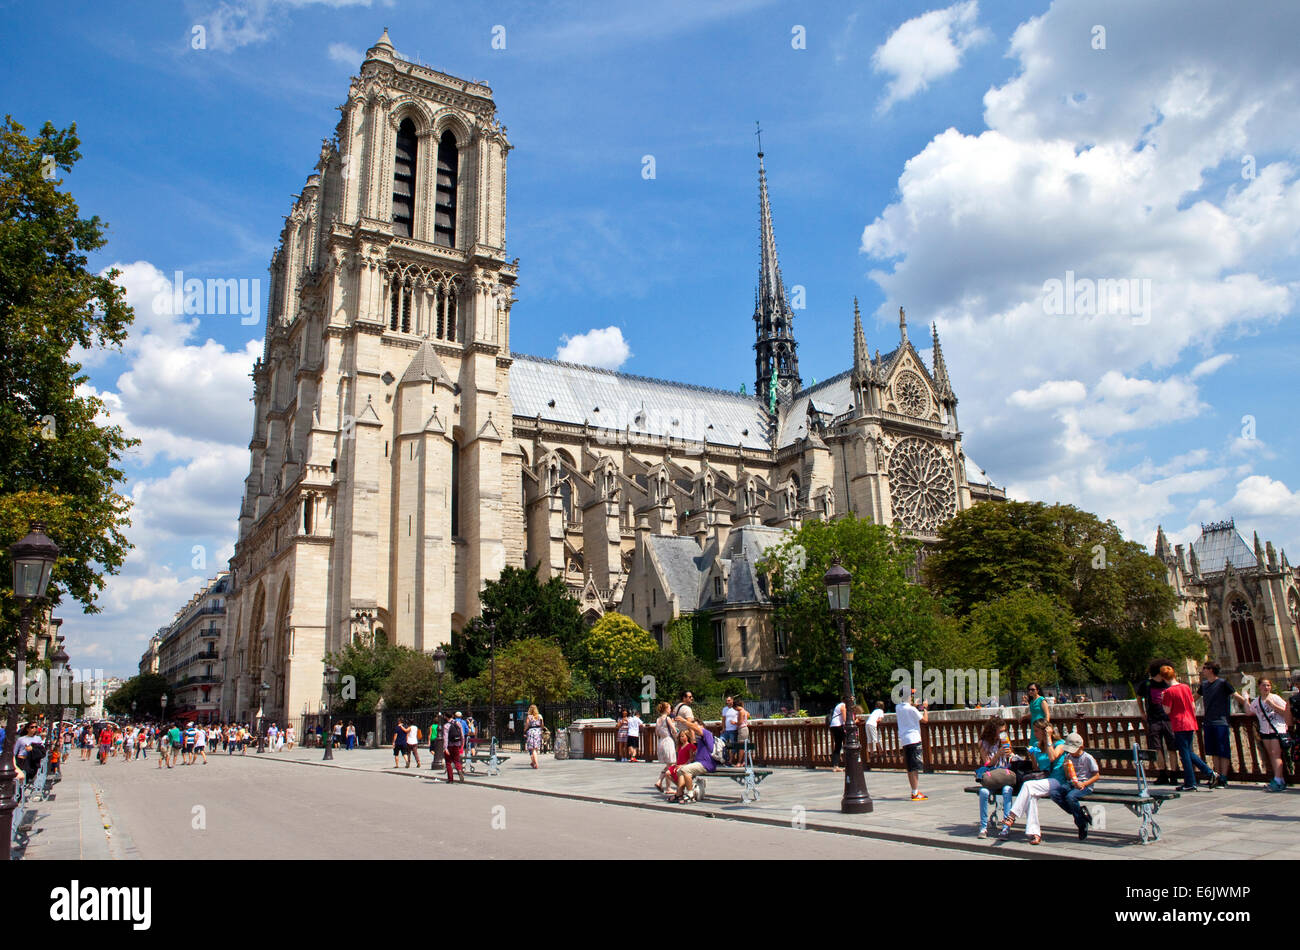 PARIS, FRANCE - AUGUST 5TH 2014: The beautiful Notre Dame Cathedral in Paris on 5th August 2014. - Stock Image